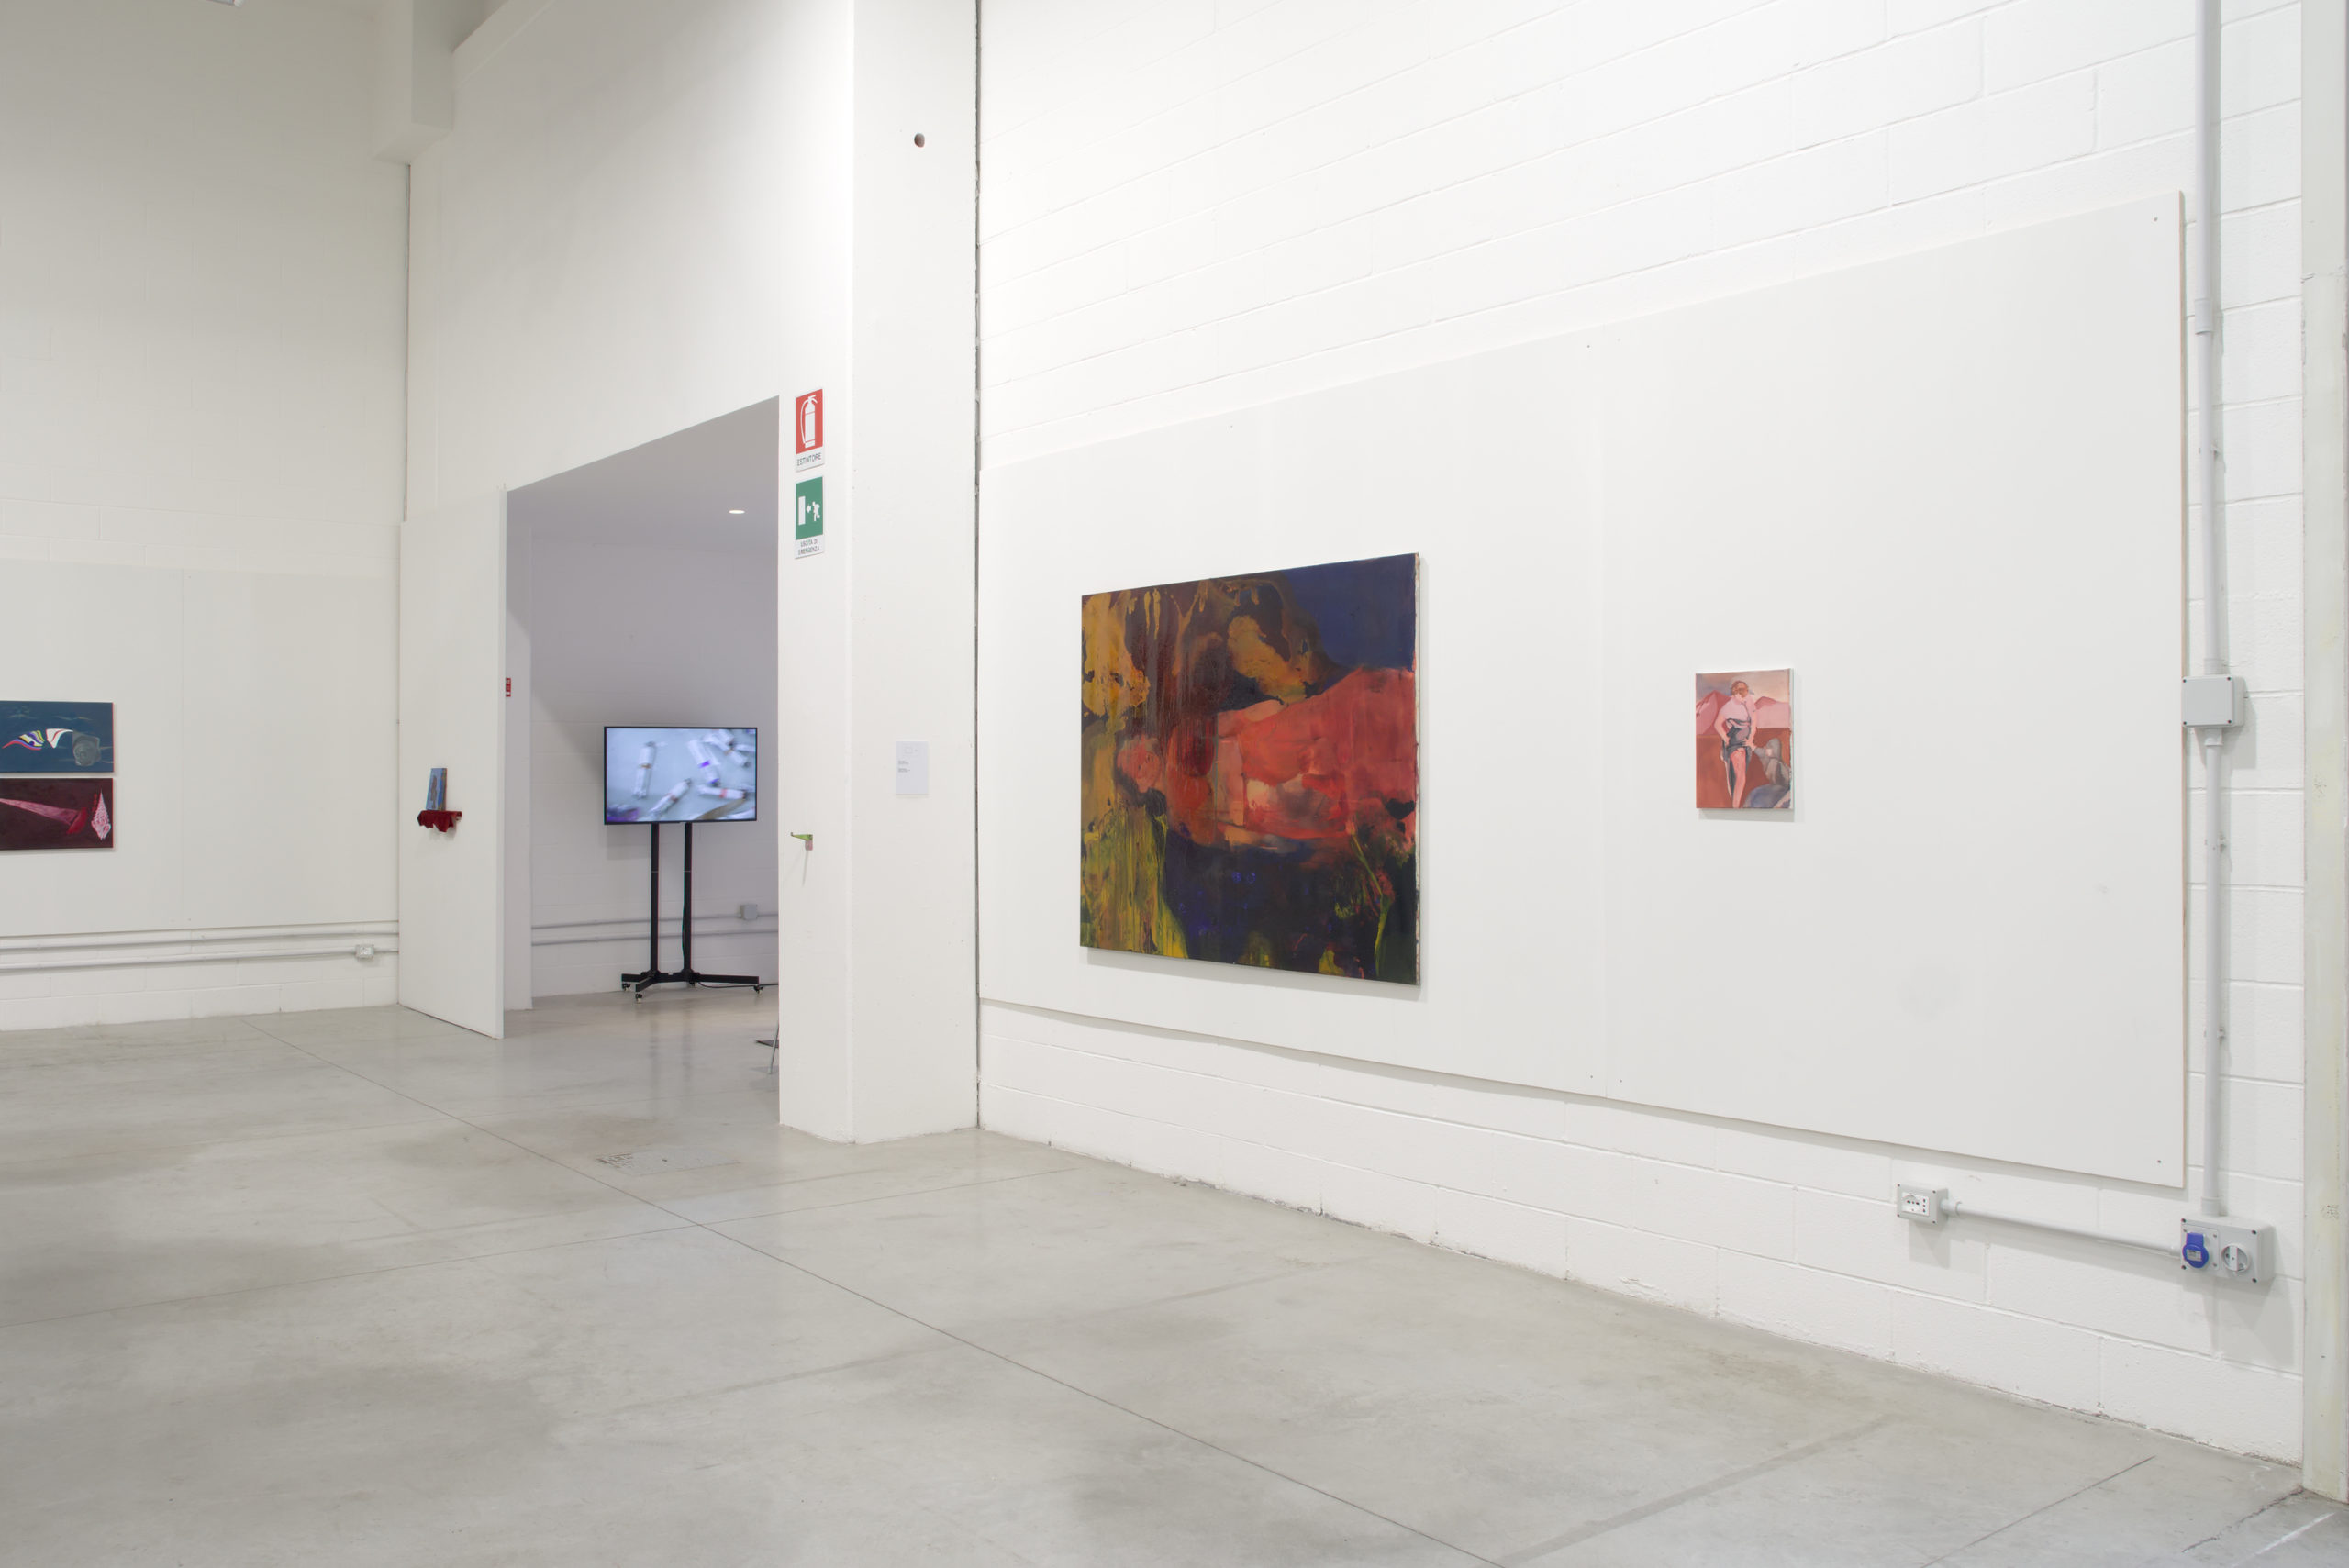 Fuori dal vaso, 2019, installation view, Vulcano, ph. C. Bettio